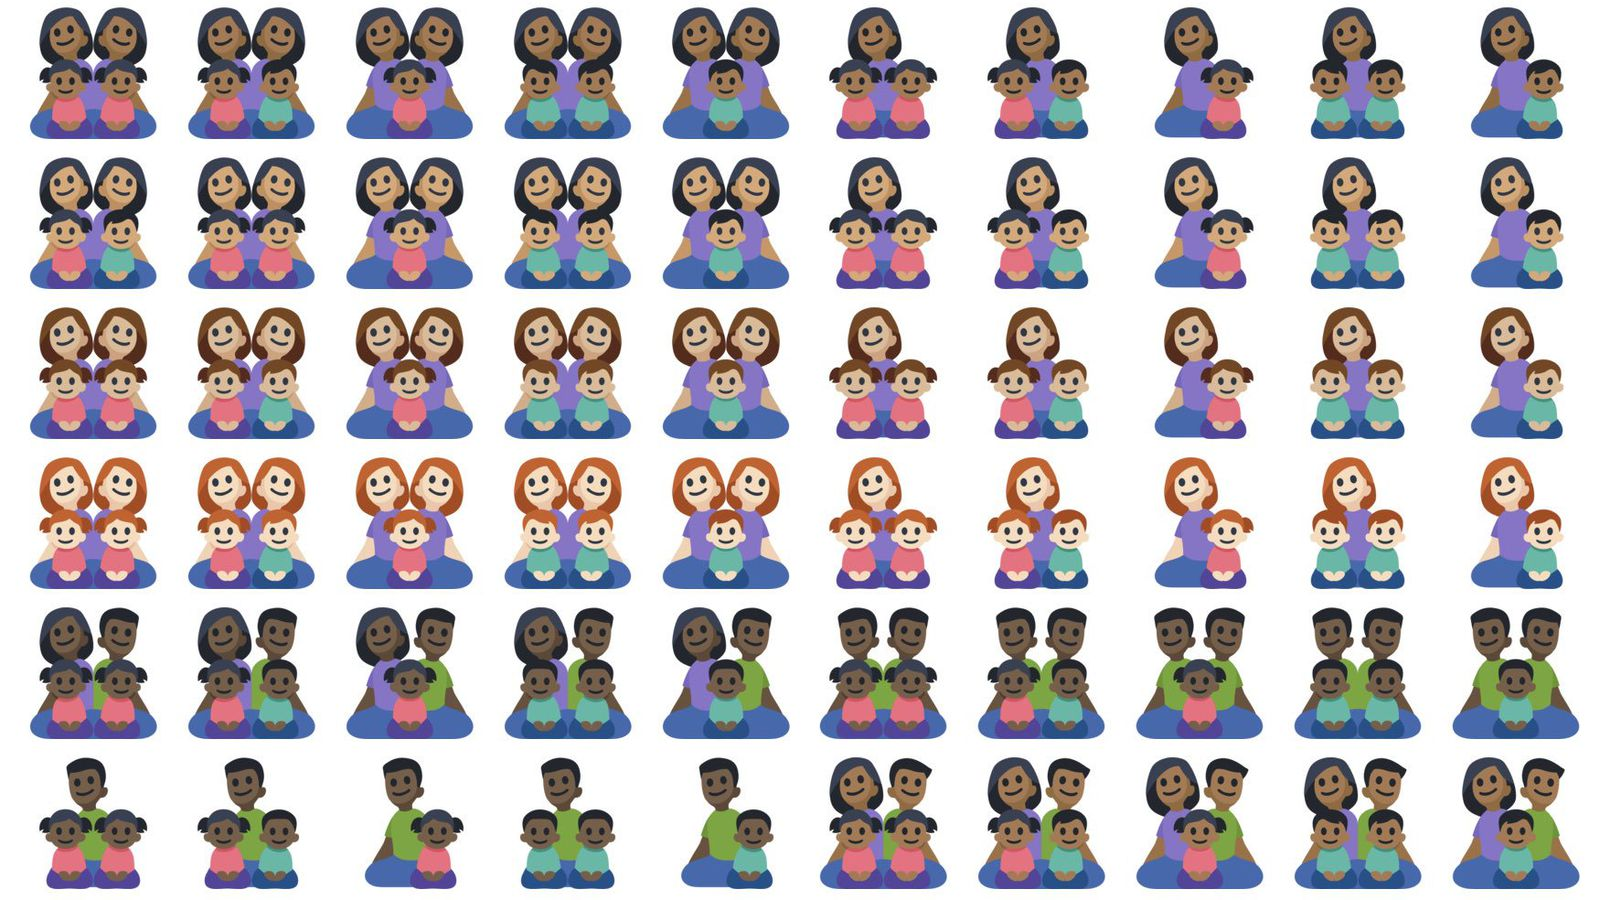 Facebook Rolls Out New Family Emoji, But There's Something